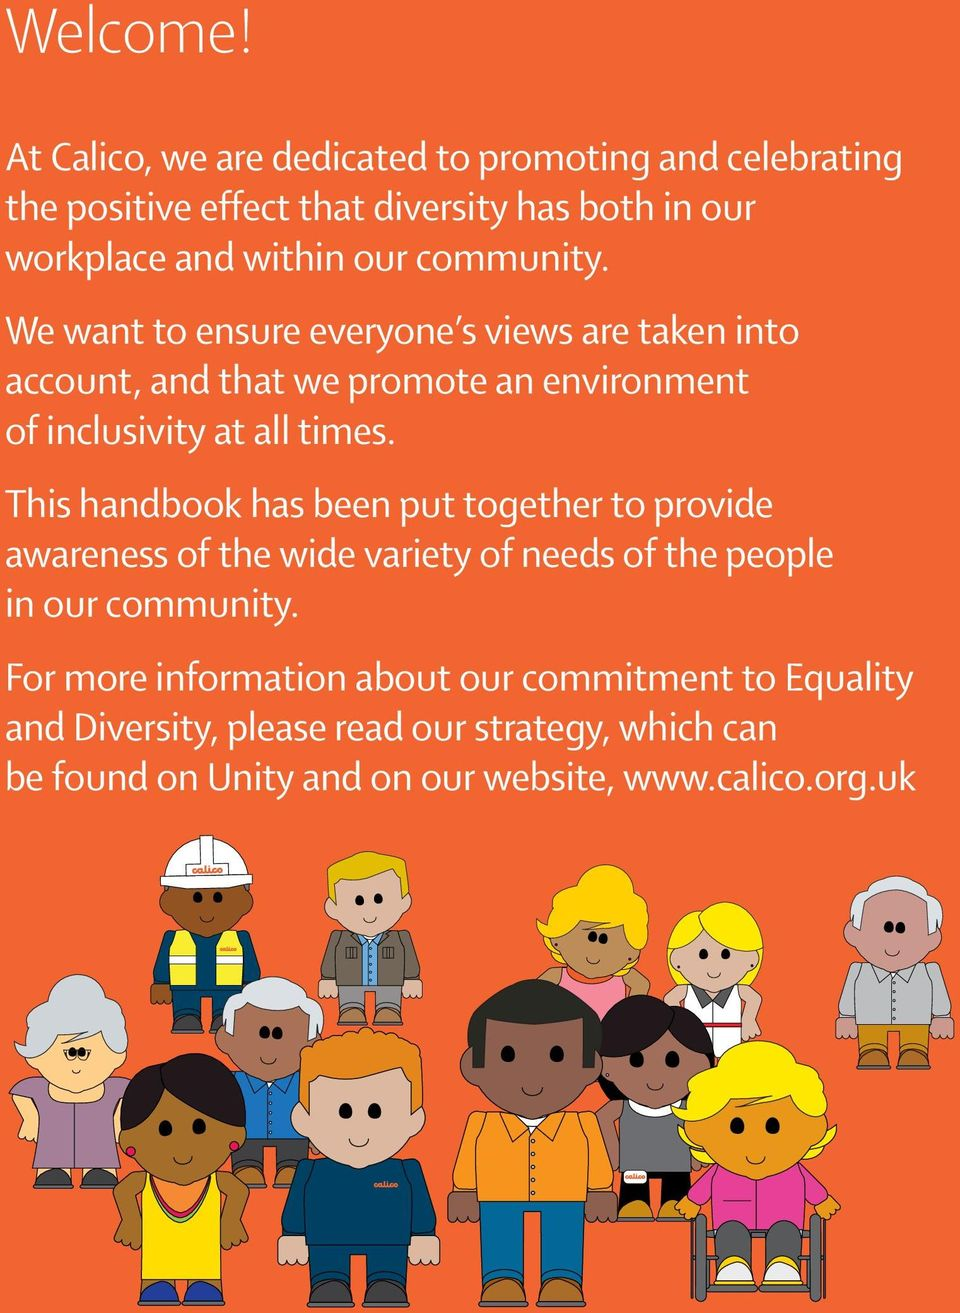 We want to ensure everyone s views are taken into account, and that we promote an environment of inclusivity at all times.